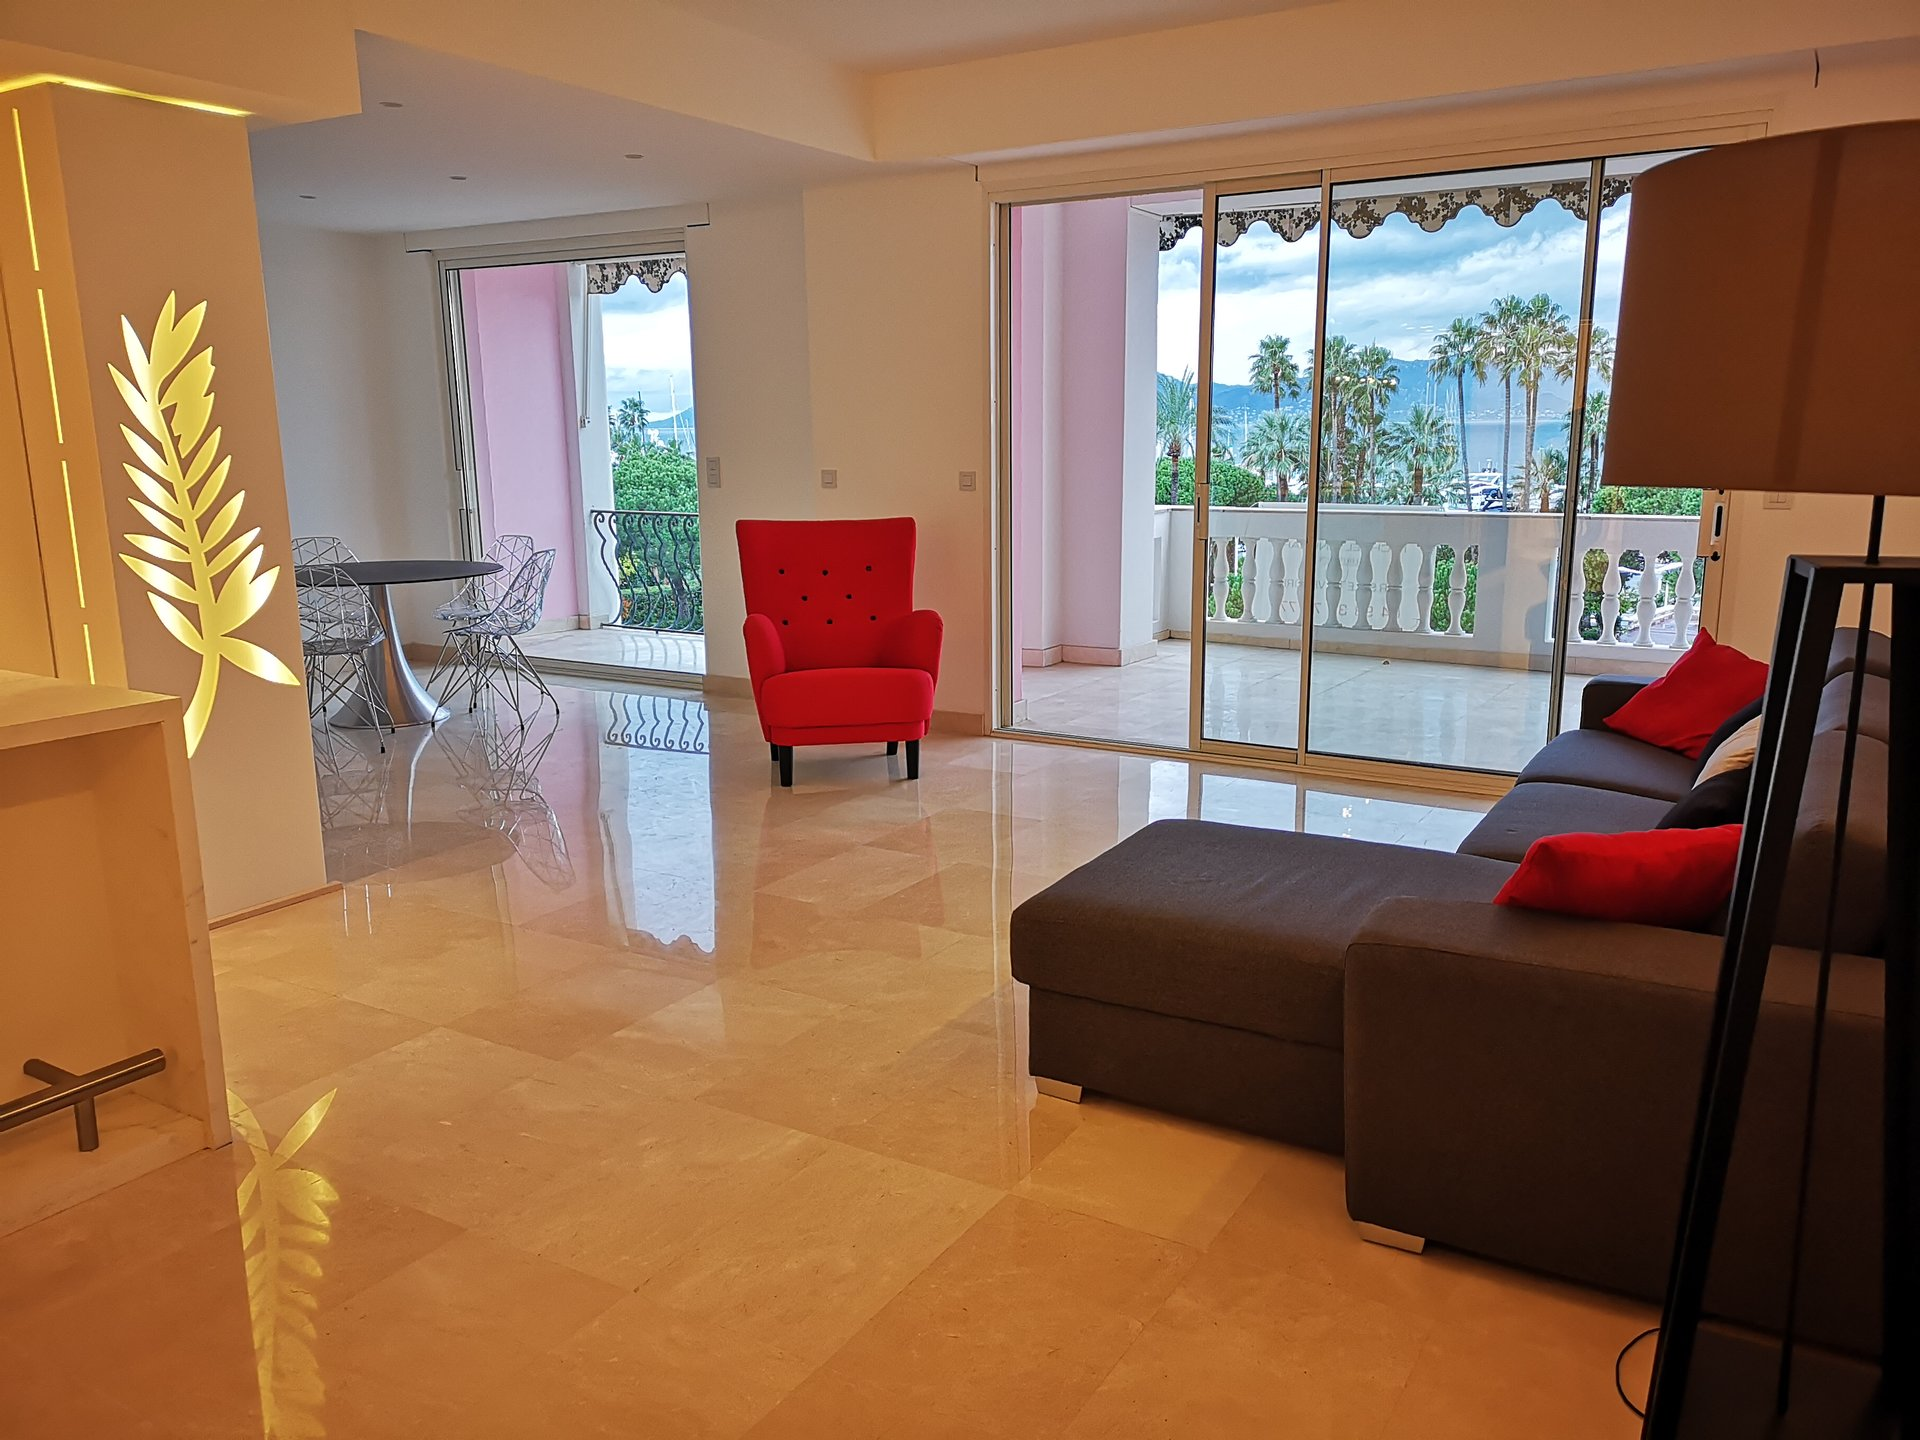 Center of the CROISETTE 3P 113M²+ 20M² Ter. SEA VIEW